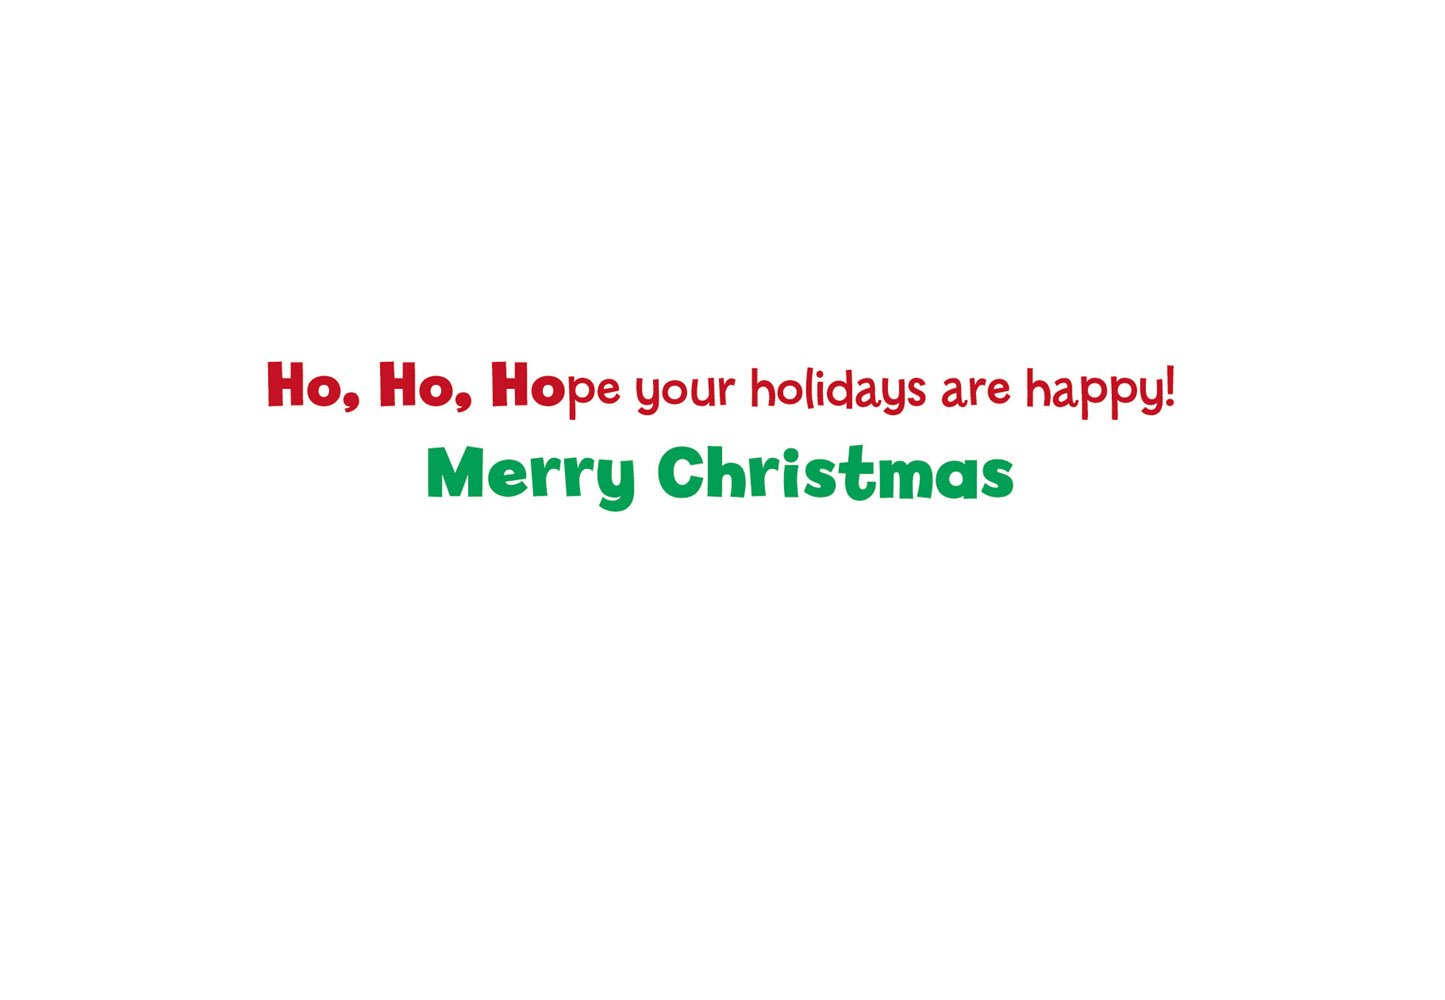 Amazon.com : Avanti Christmas Cards, Ho Ho Ho, 10 Count : Blank ...